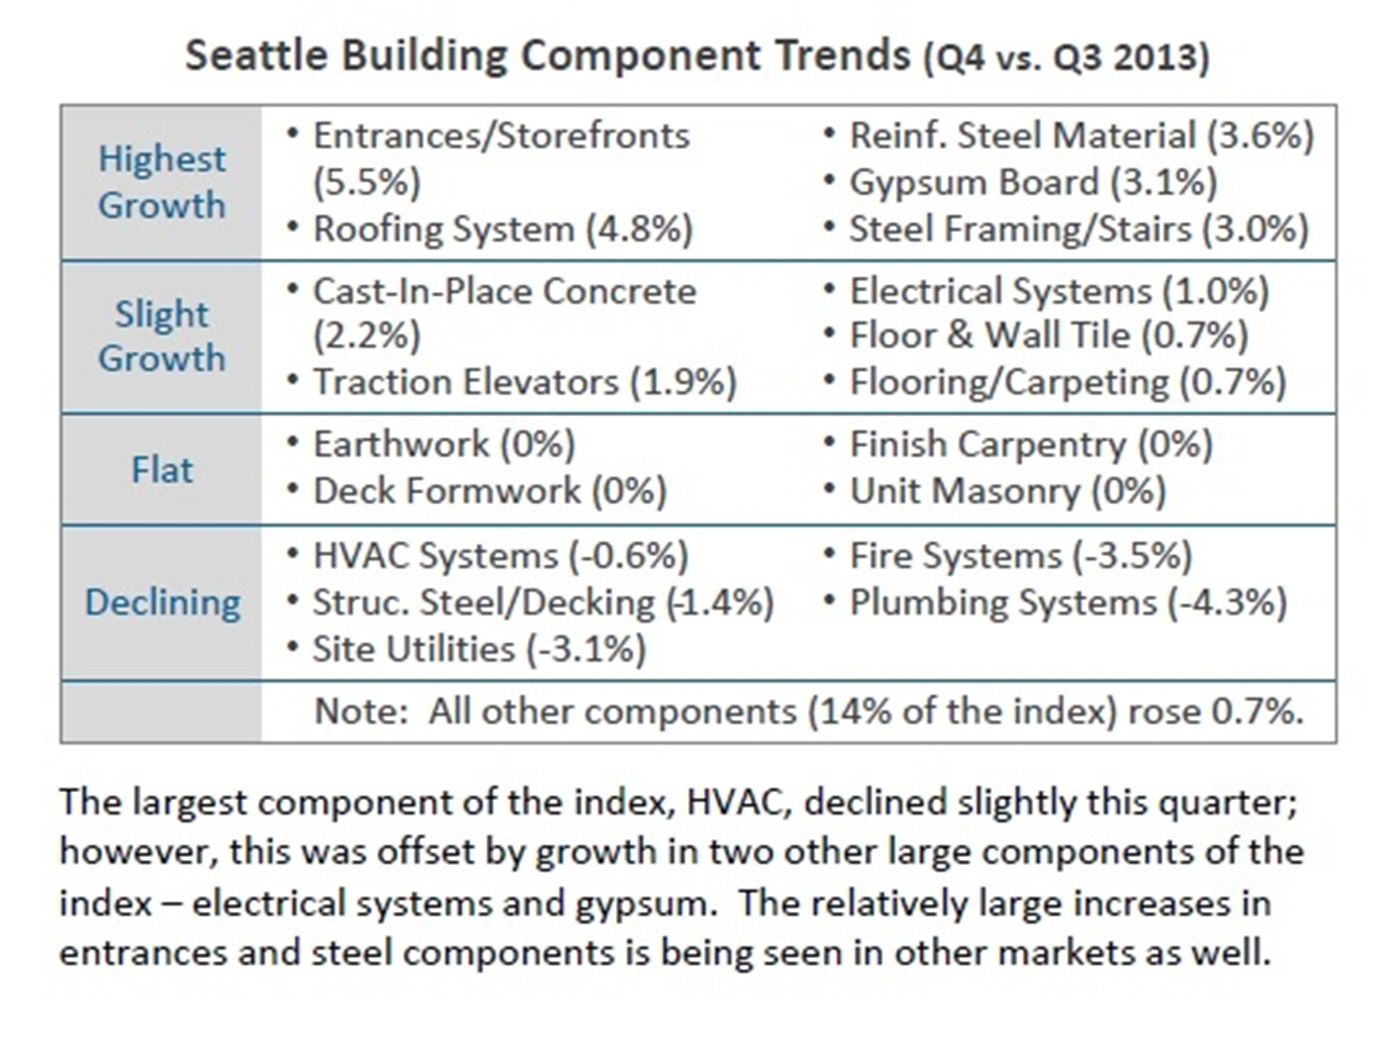 Seattle DJC com local business news and data - Construction - Reduce